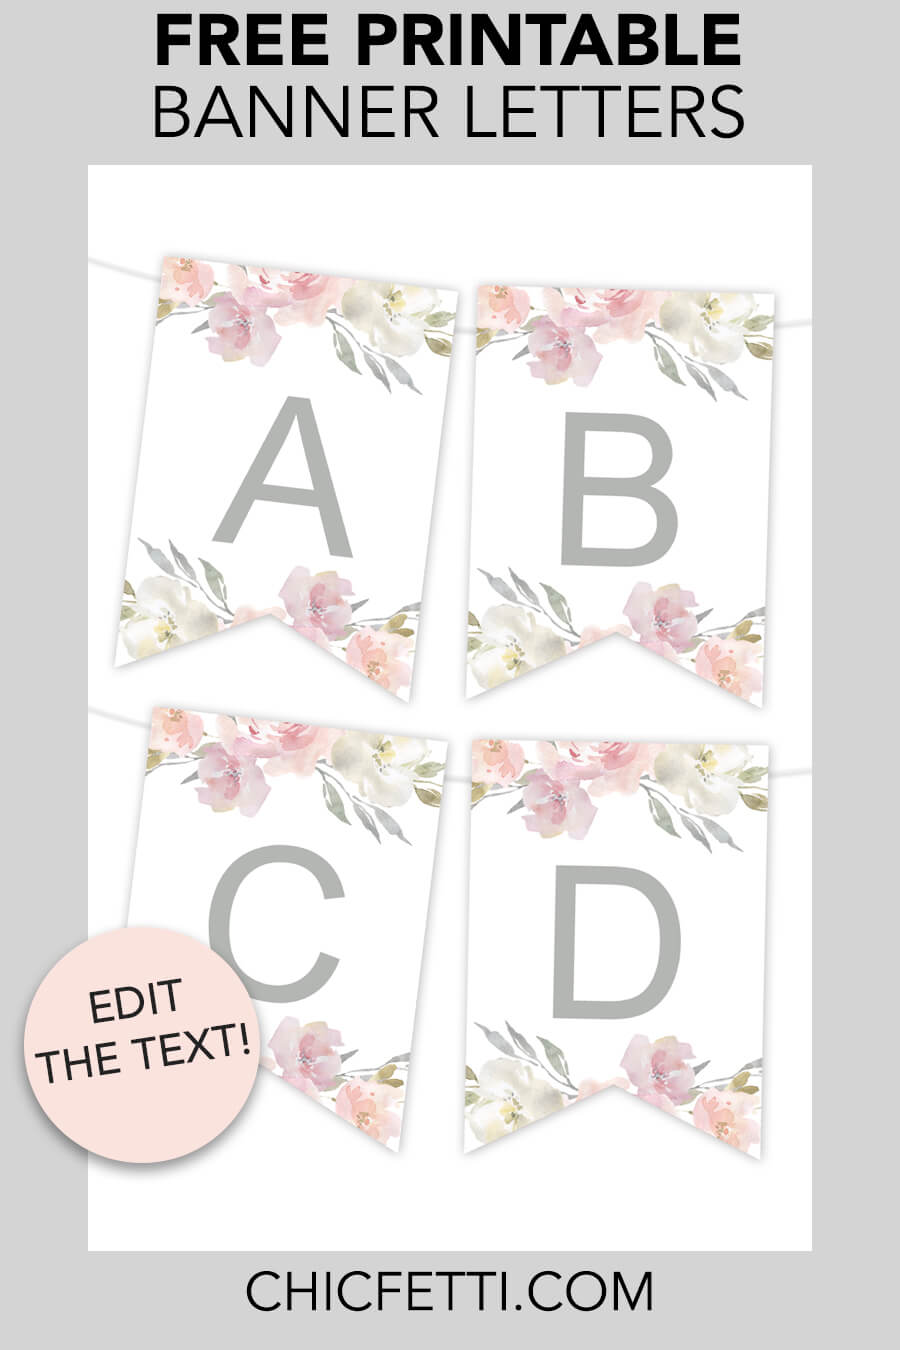 Free Printable Floral Banner - make your own banners with this free printable party banner. This banner is a great party idea for any party! #partyideas #freeprintable #party #banner #bannerletters #printable